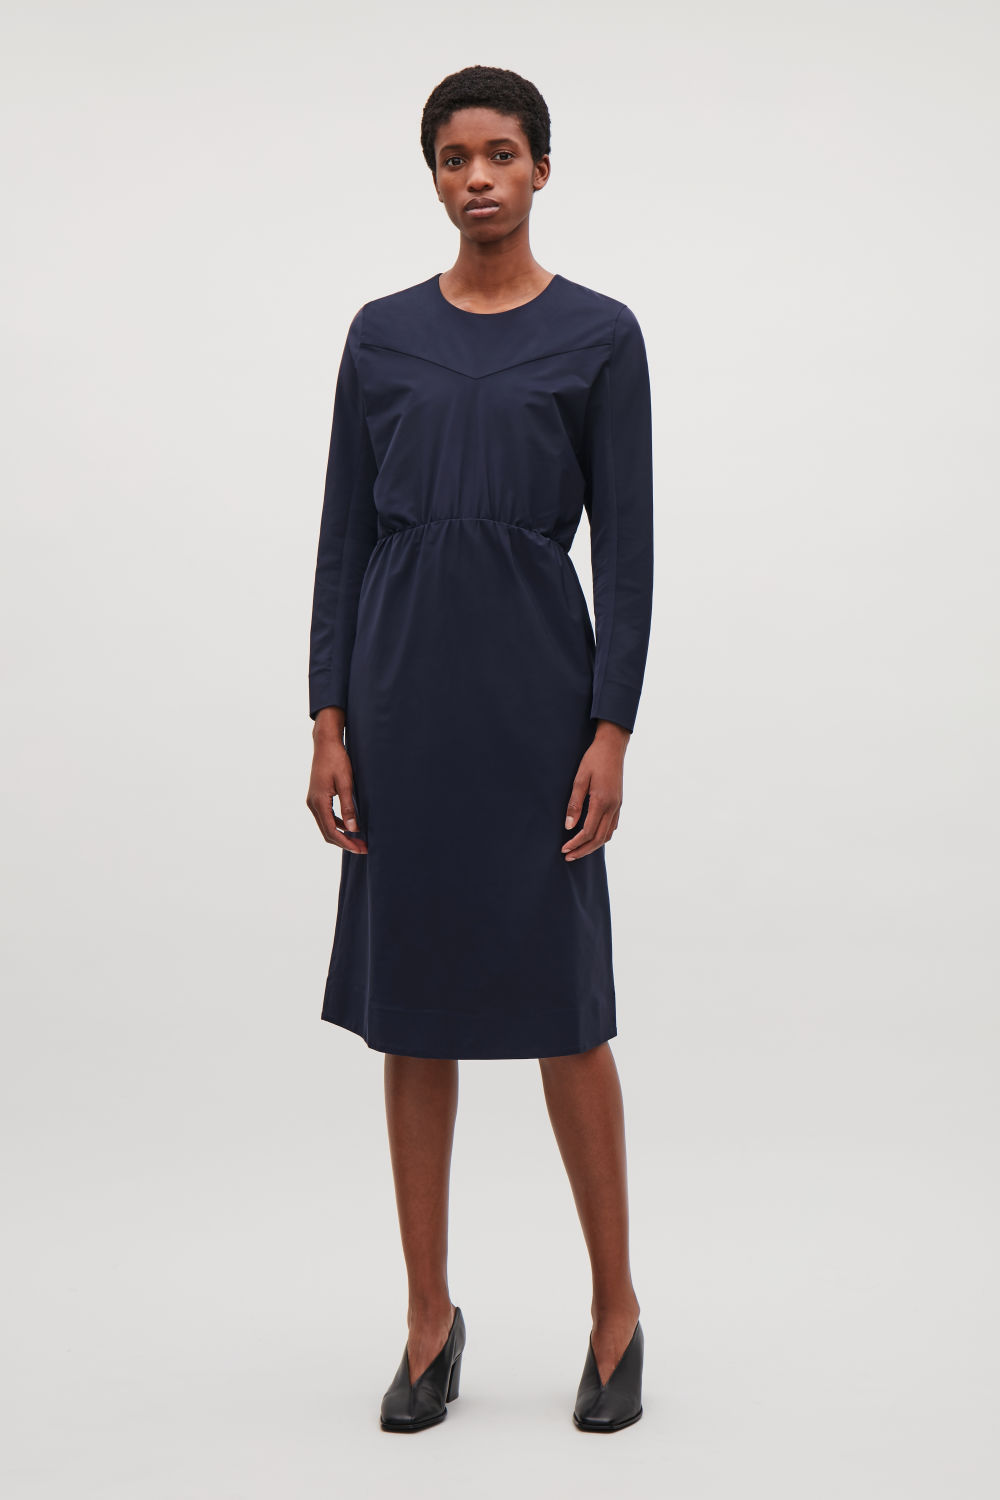 COS DRESS WITH TWO-PIECE SLEEVES,Navy